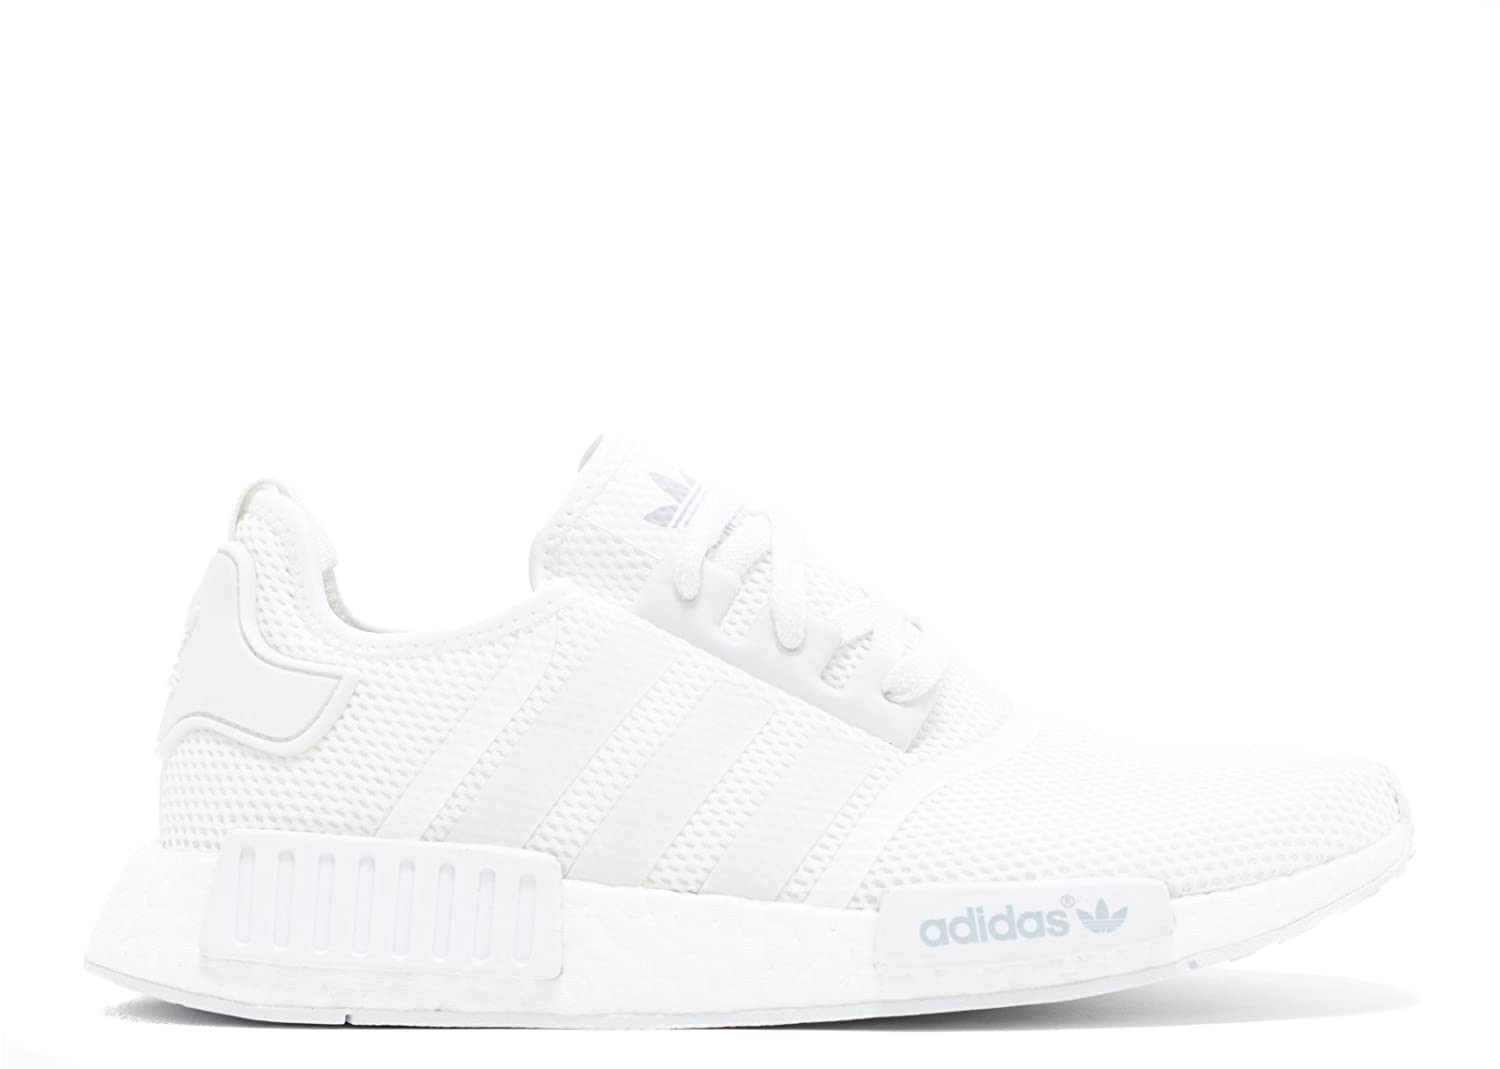 save off 00bd0 21e4f adidas NMD R1 'Triple White' - S79166 - Size 9